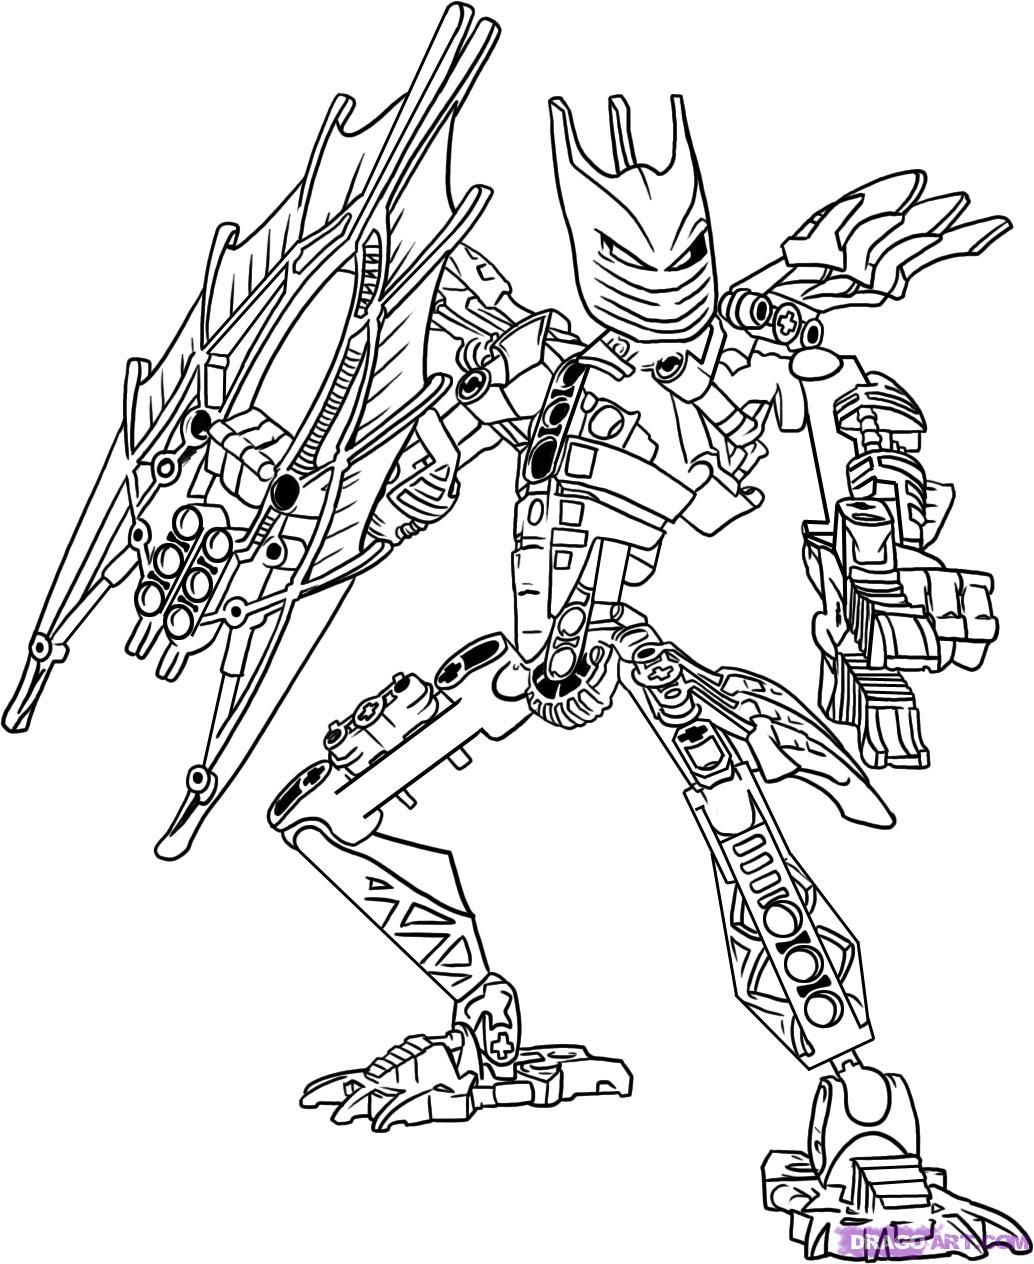 28+ Lego bionicle coloring pages ideas in 2021